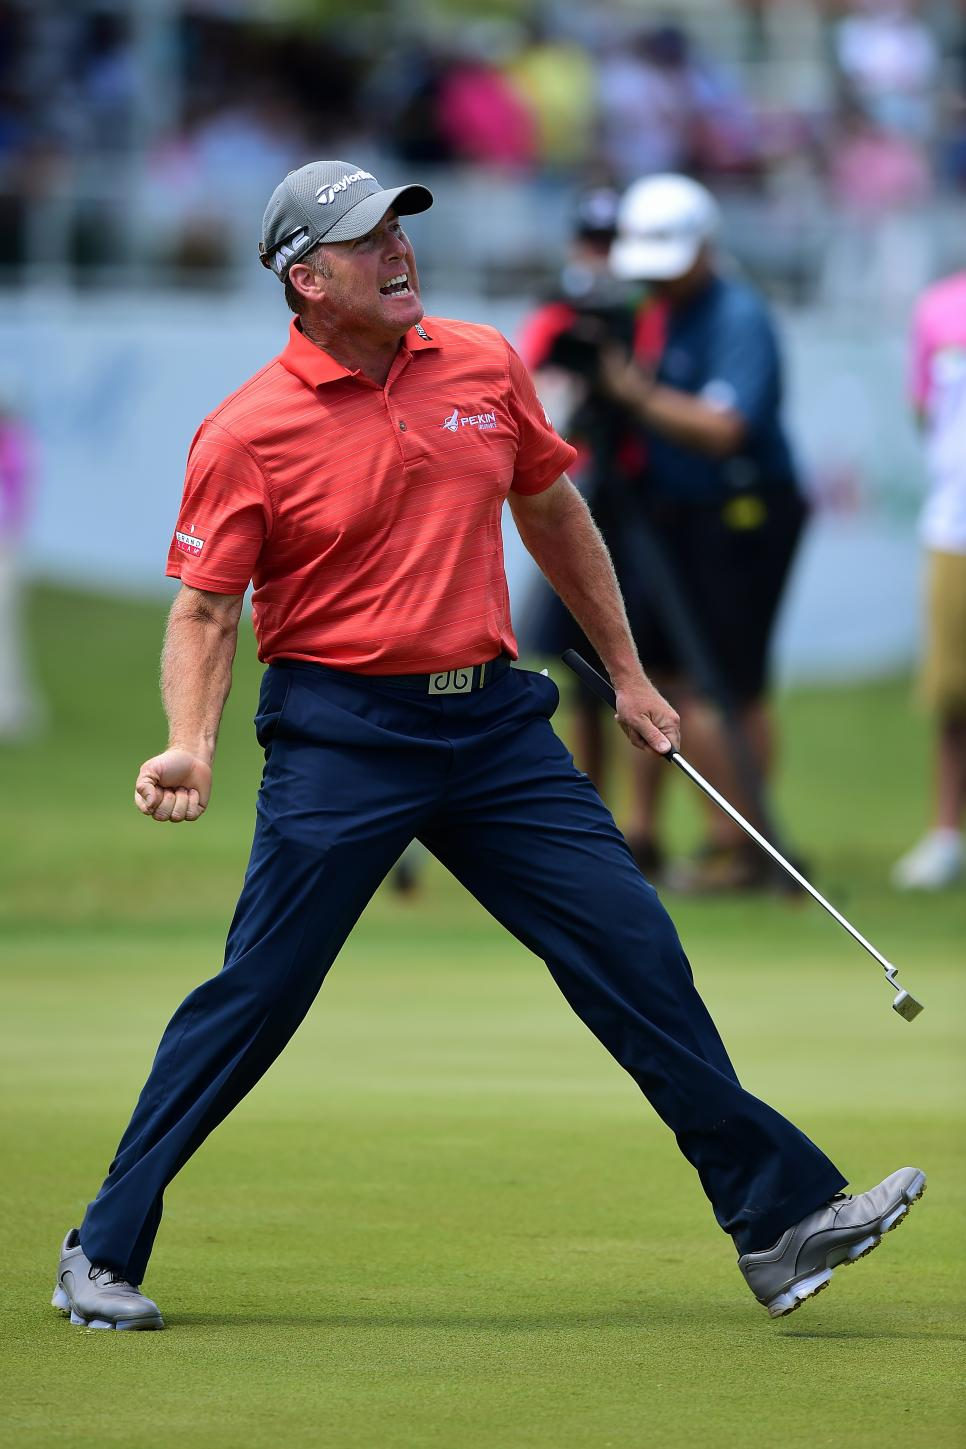 The clubs D.A. Points used to win the Puerto Rico Open | Golf ...